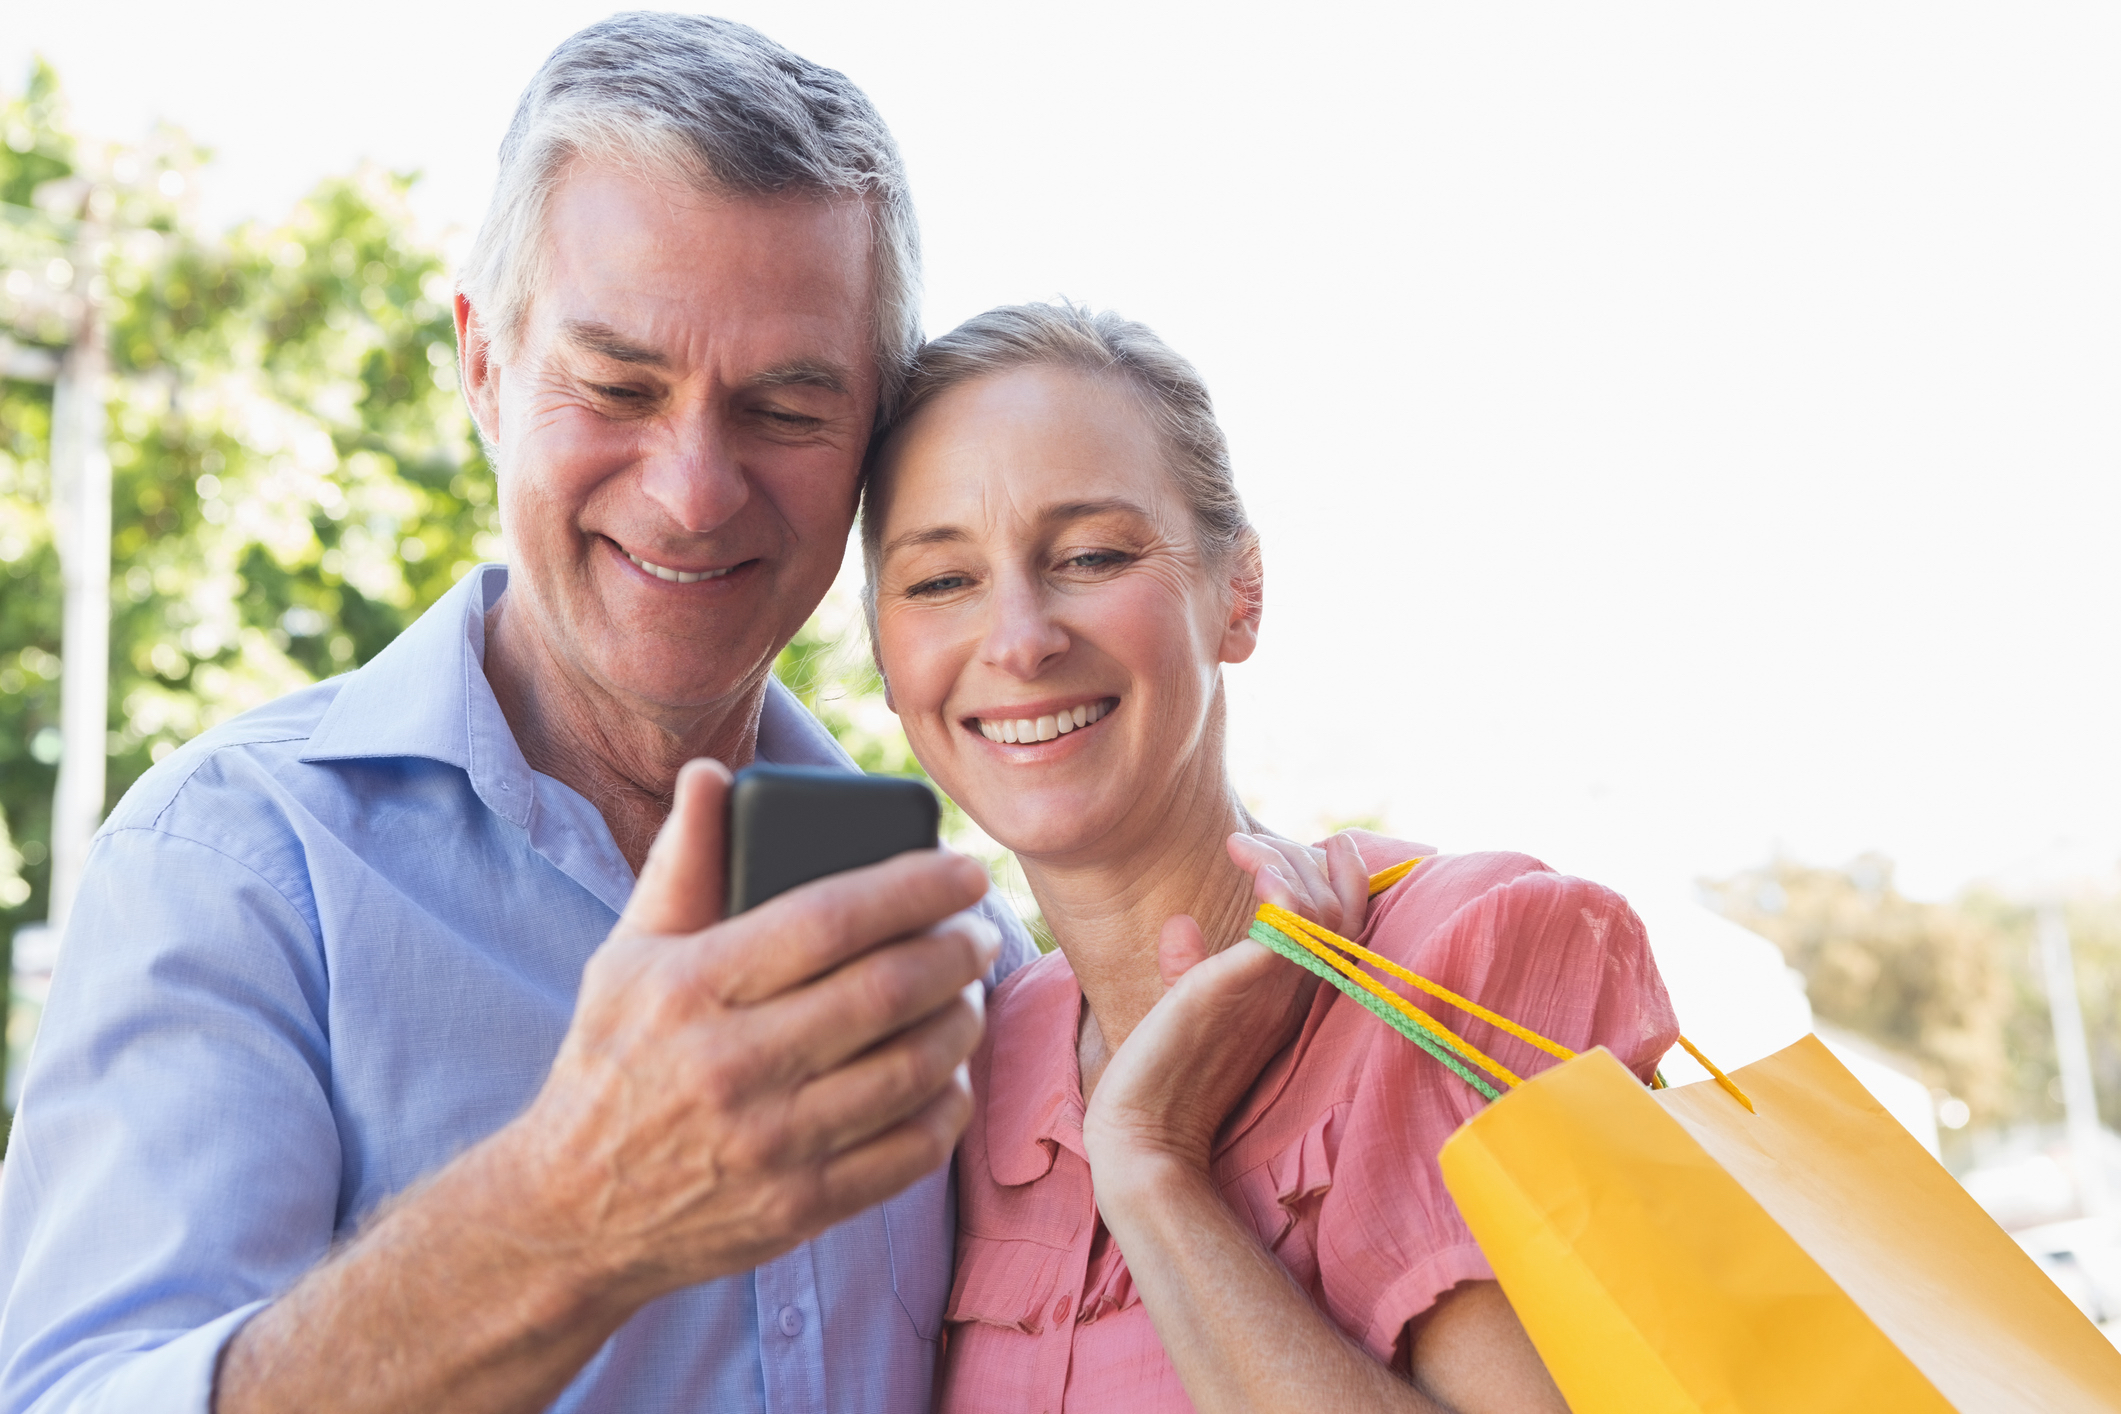 3 Ways Your Smartphone Can Make Retirement Even Better preview image